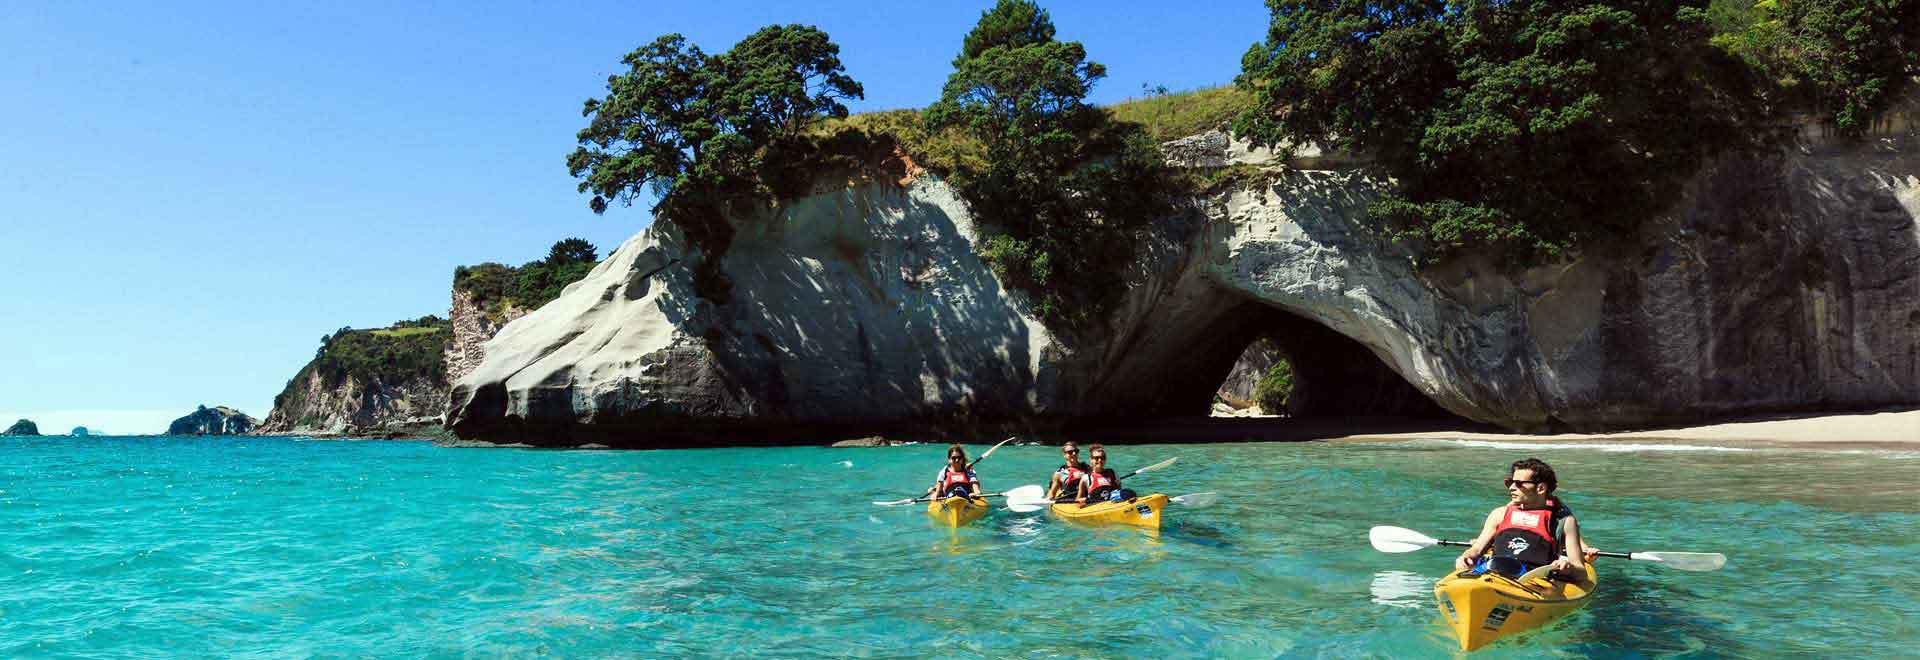 cathedral cove new zealand activities attractions. Black Bedroom Furniture Sets. Home Design Ideas